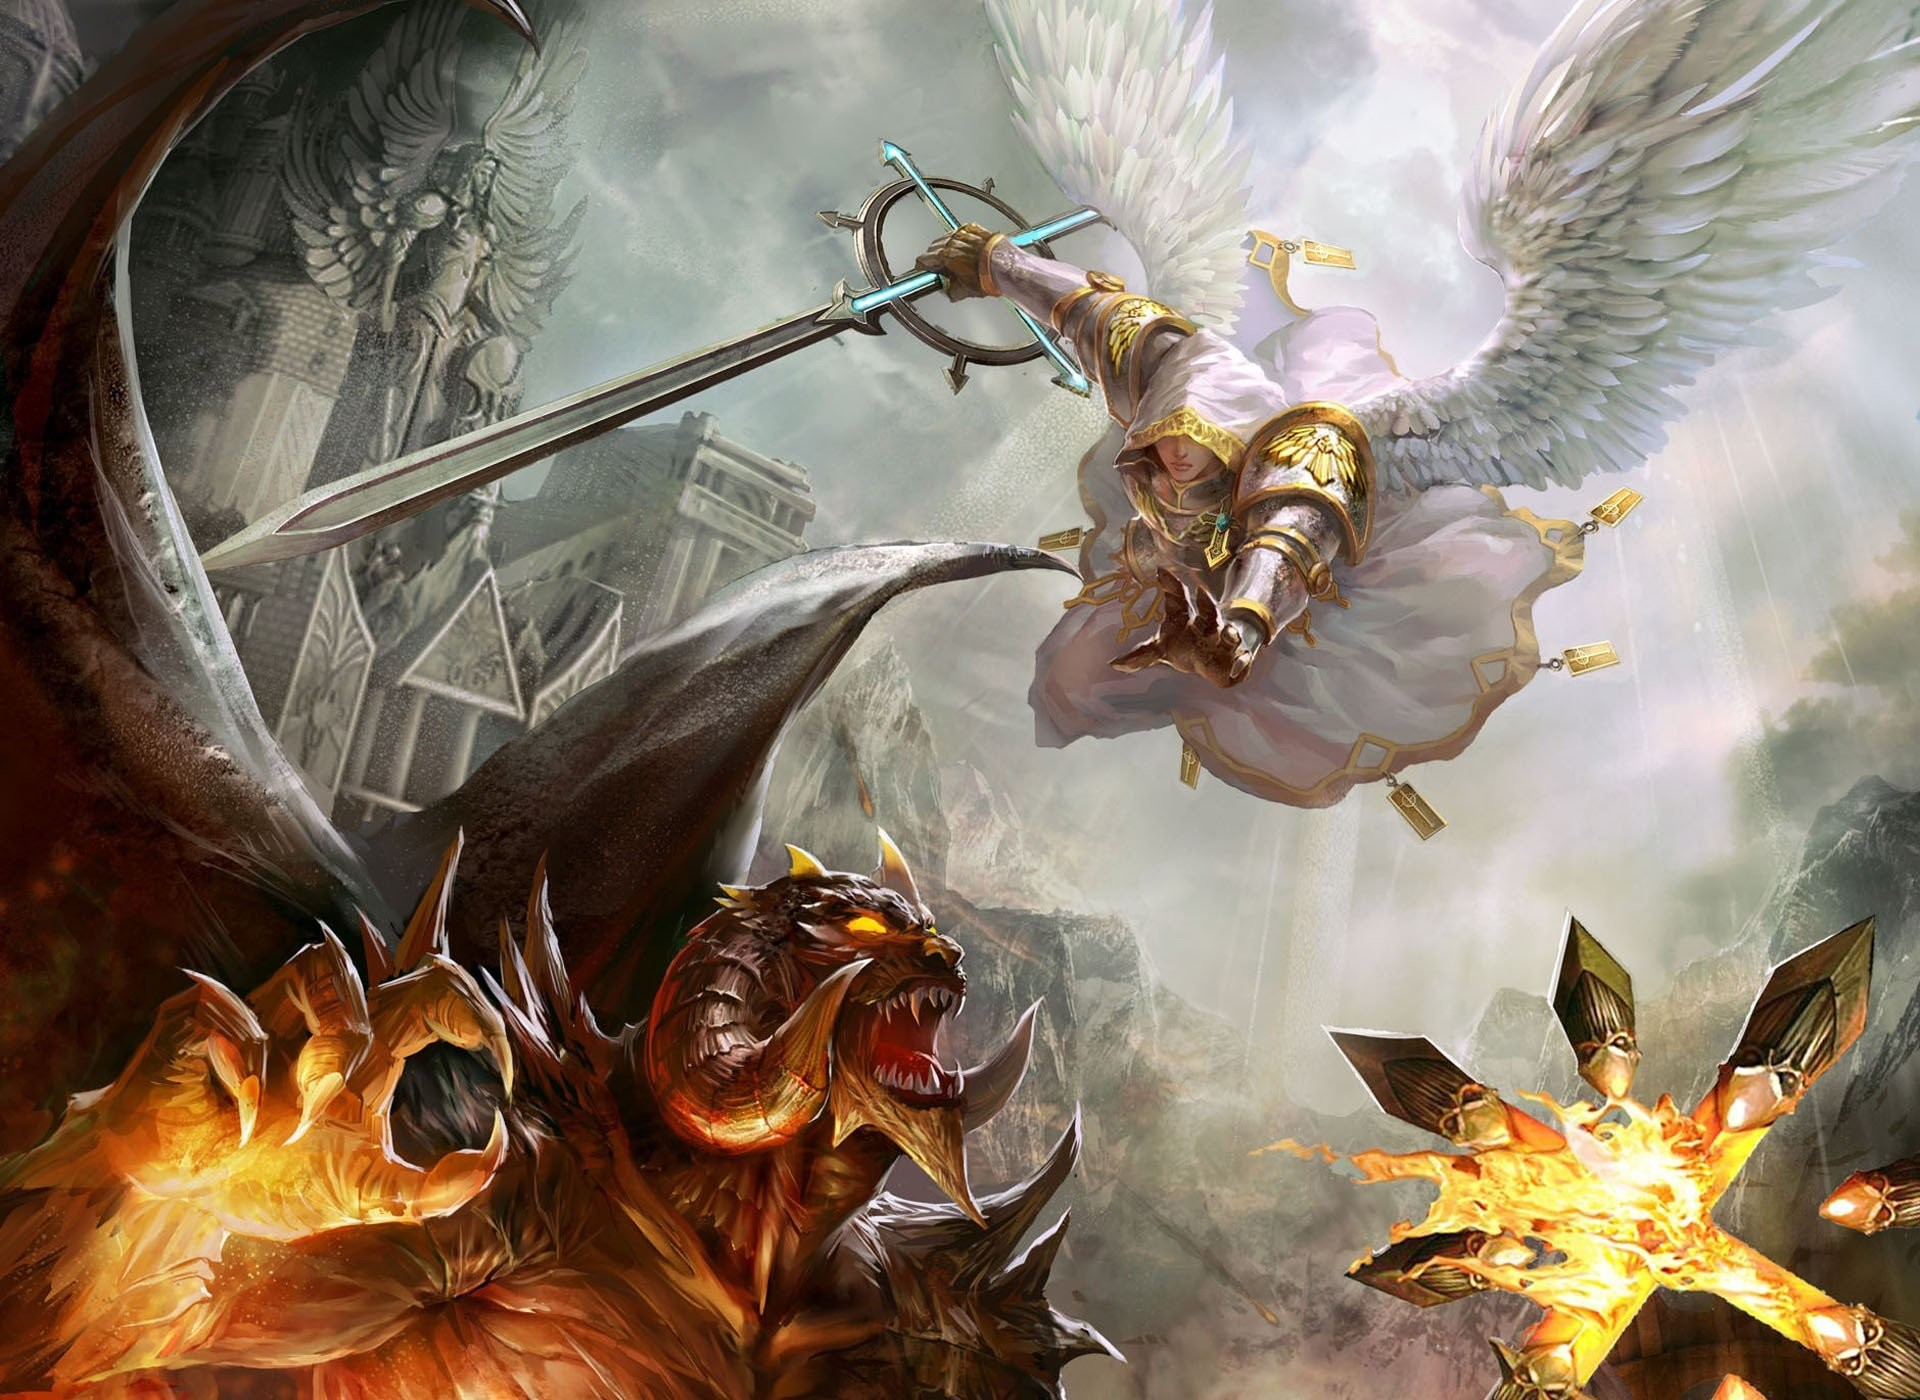 1920x1400 Angels Artwork Battles Demons Devil Fight Fire Good Vs Evil Heroes Of Might  And Magic V Swords Video Games Weapons Wings